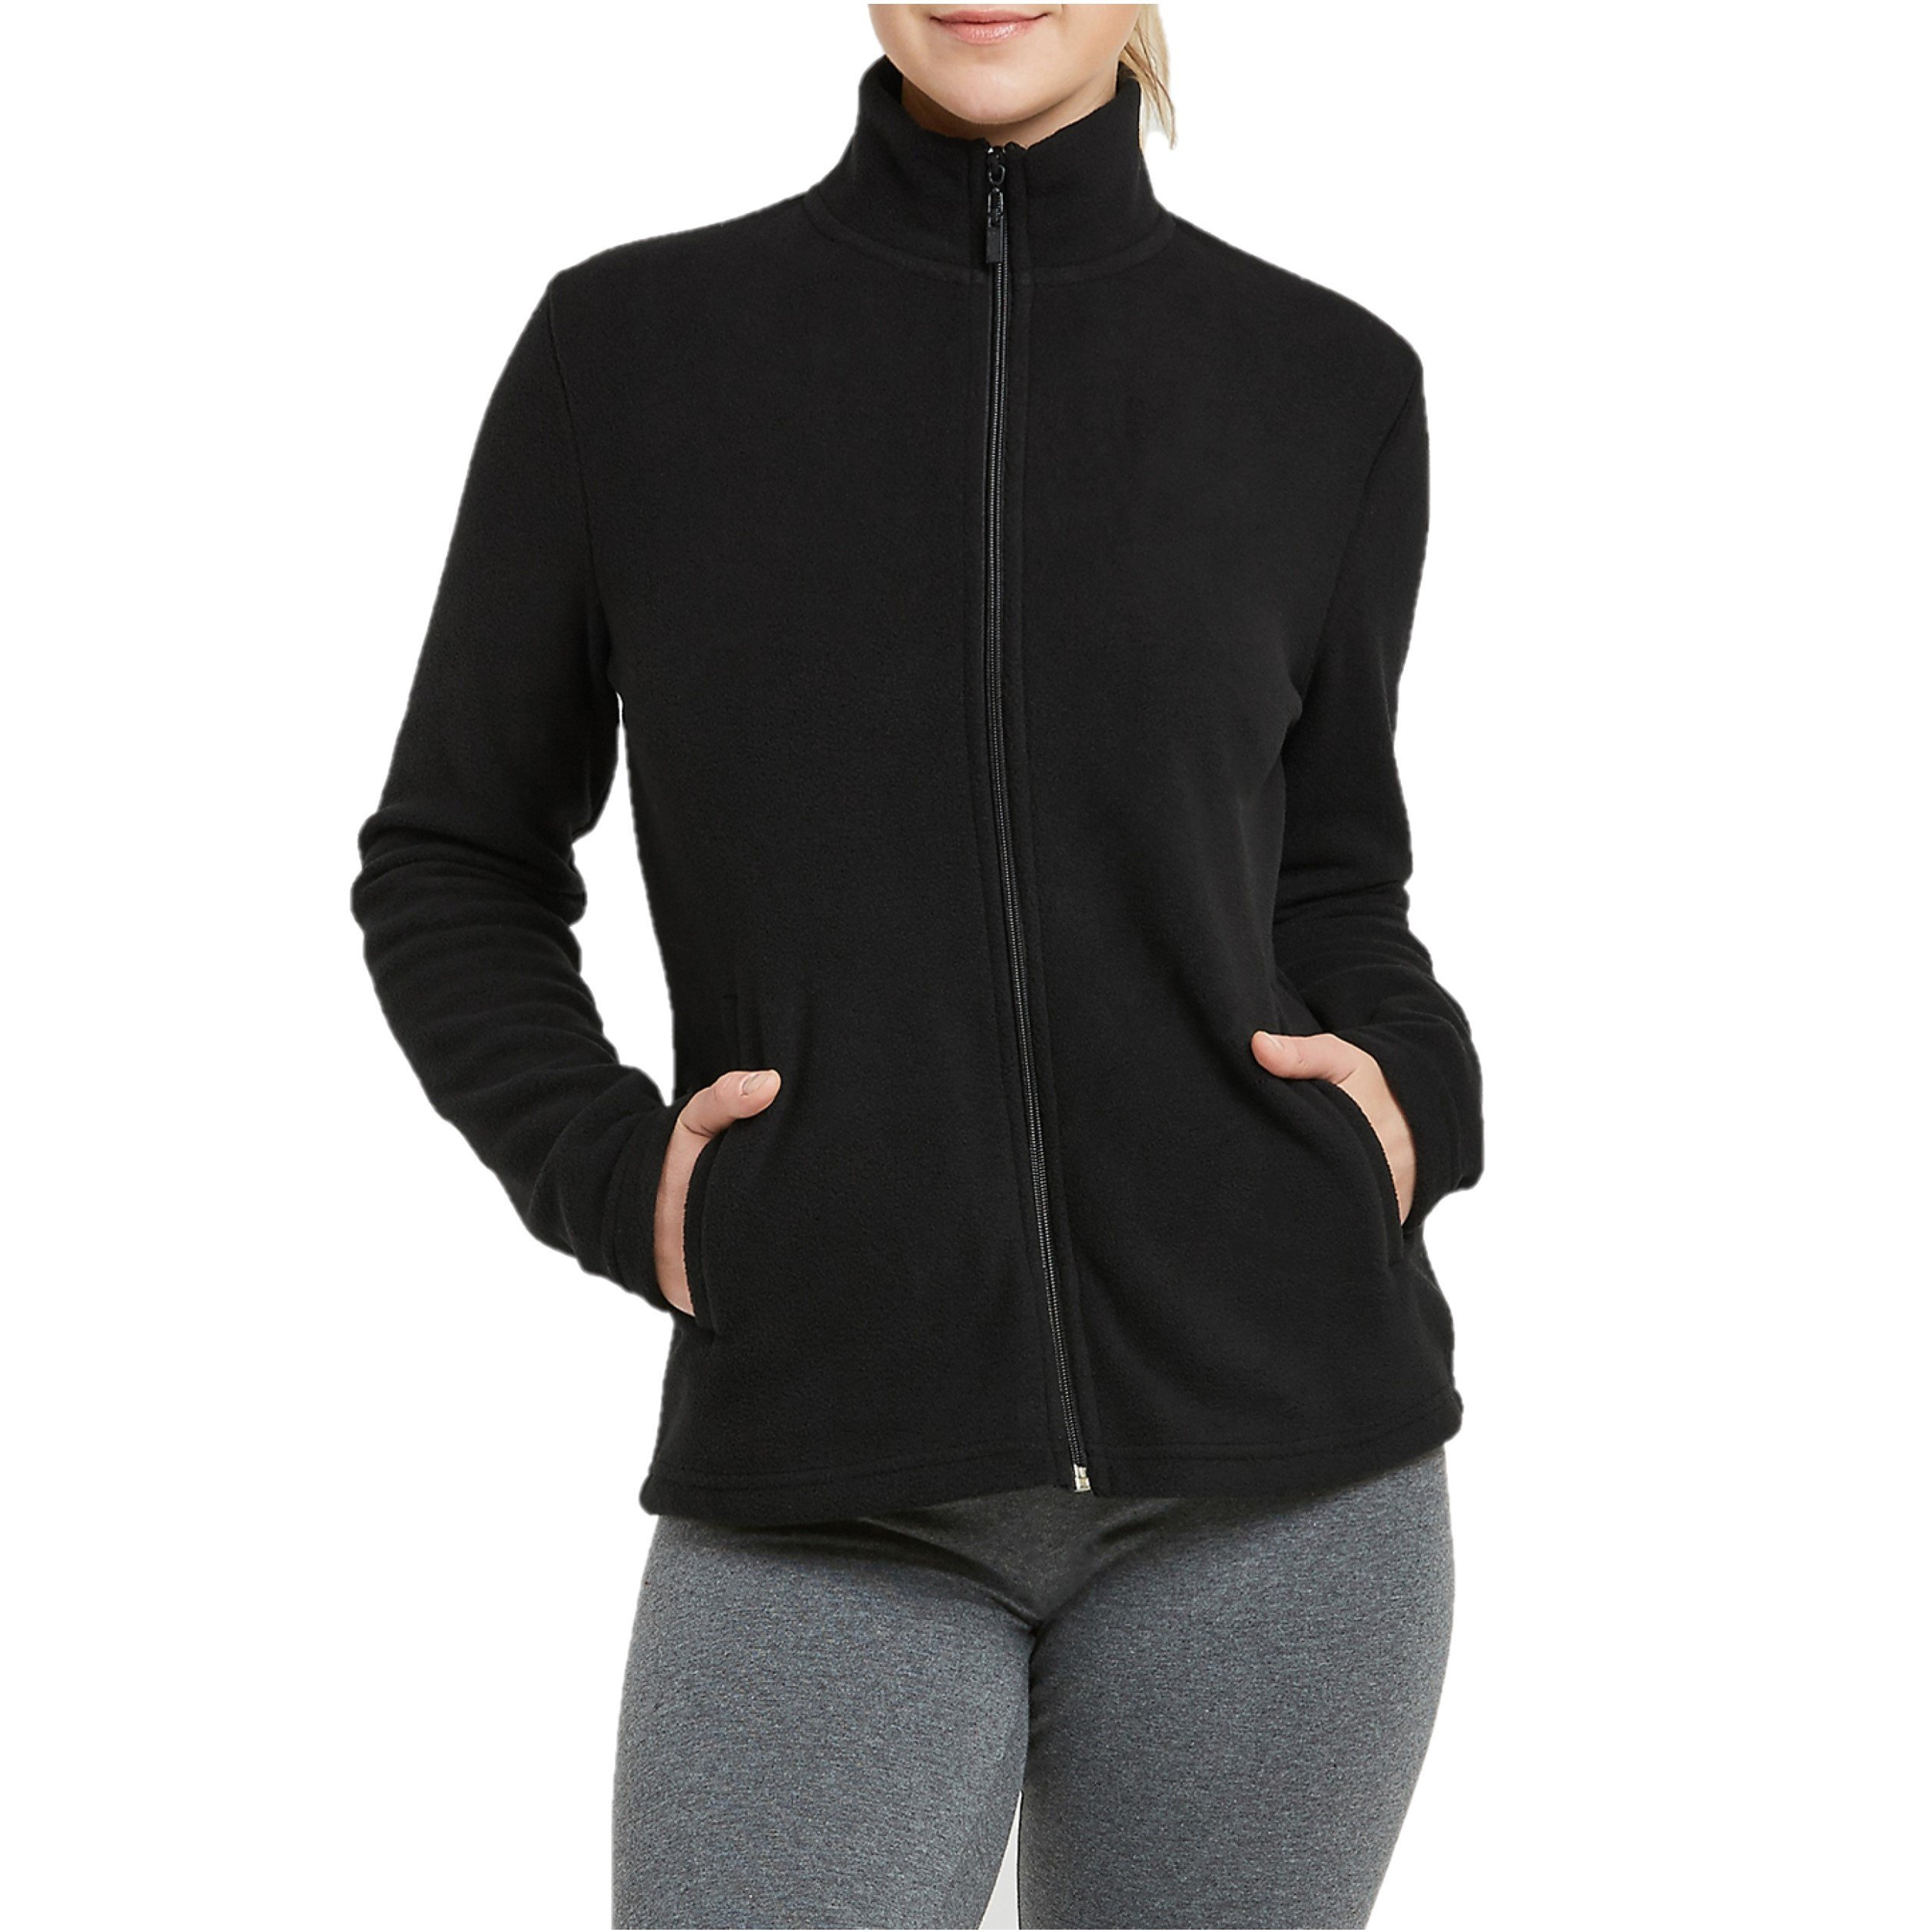 Mechaly Women Classic Full Zip Long Sleeve Polar Fleece Jacket (Black, Large)